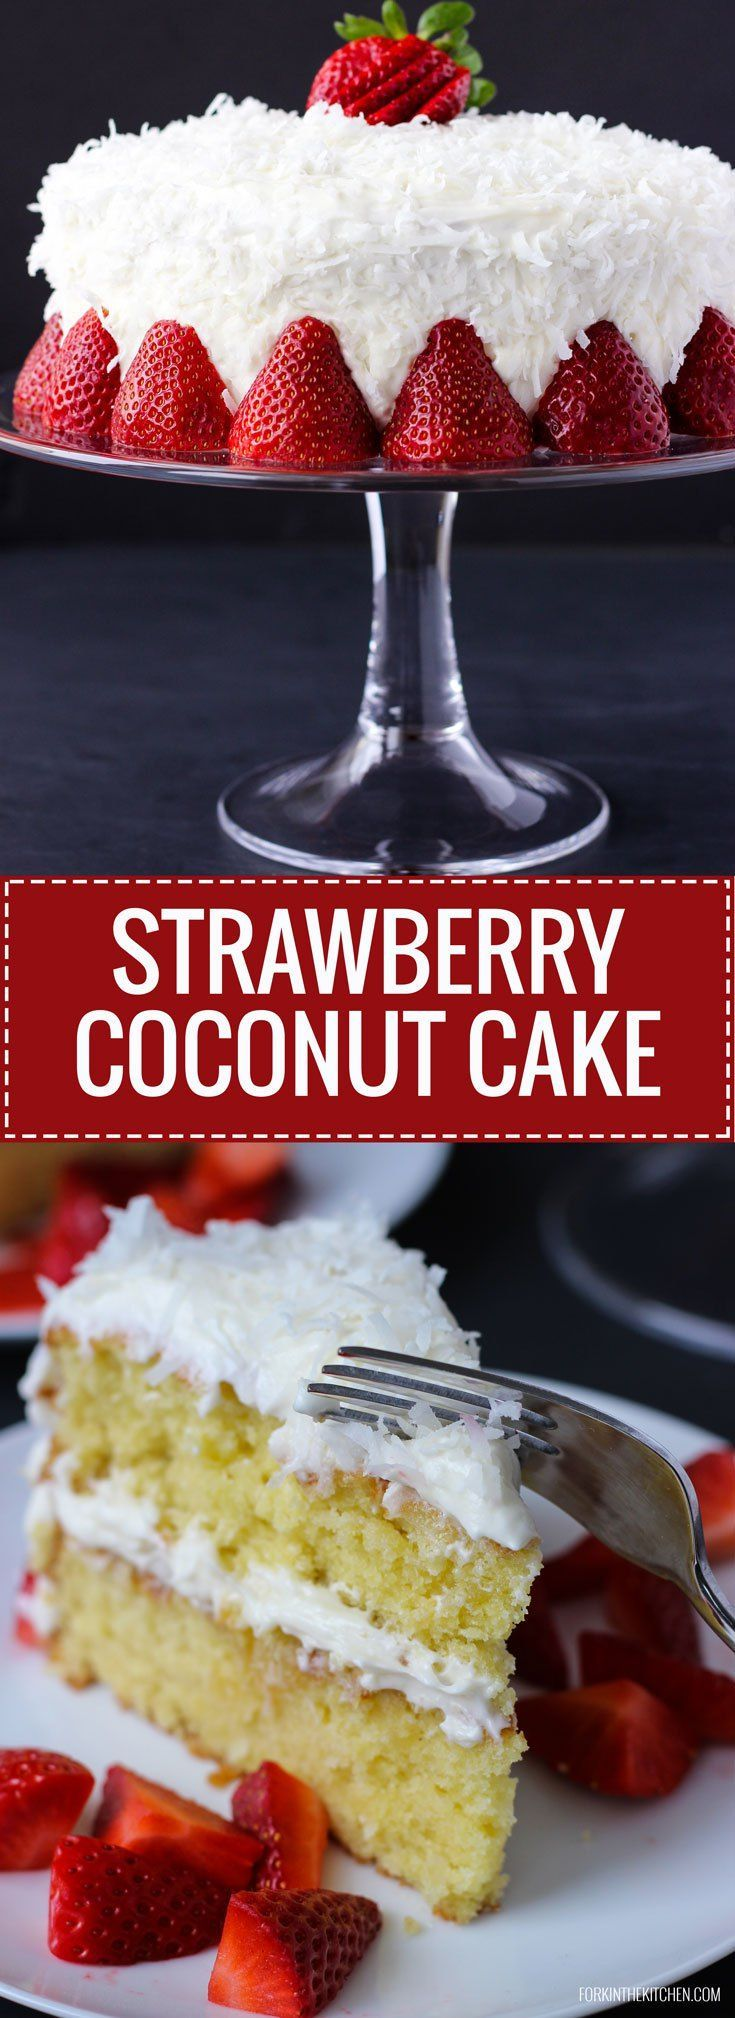 Strawberry Coconut Cake - moist, light, coconut cake with creamy frosting and a sweet strawberry sauce.